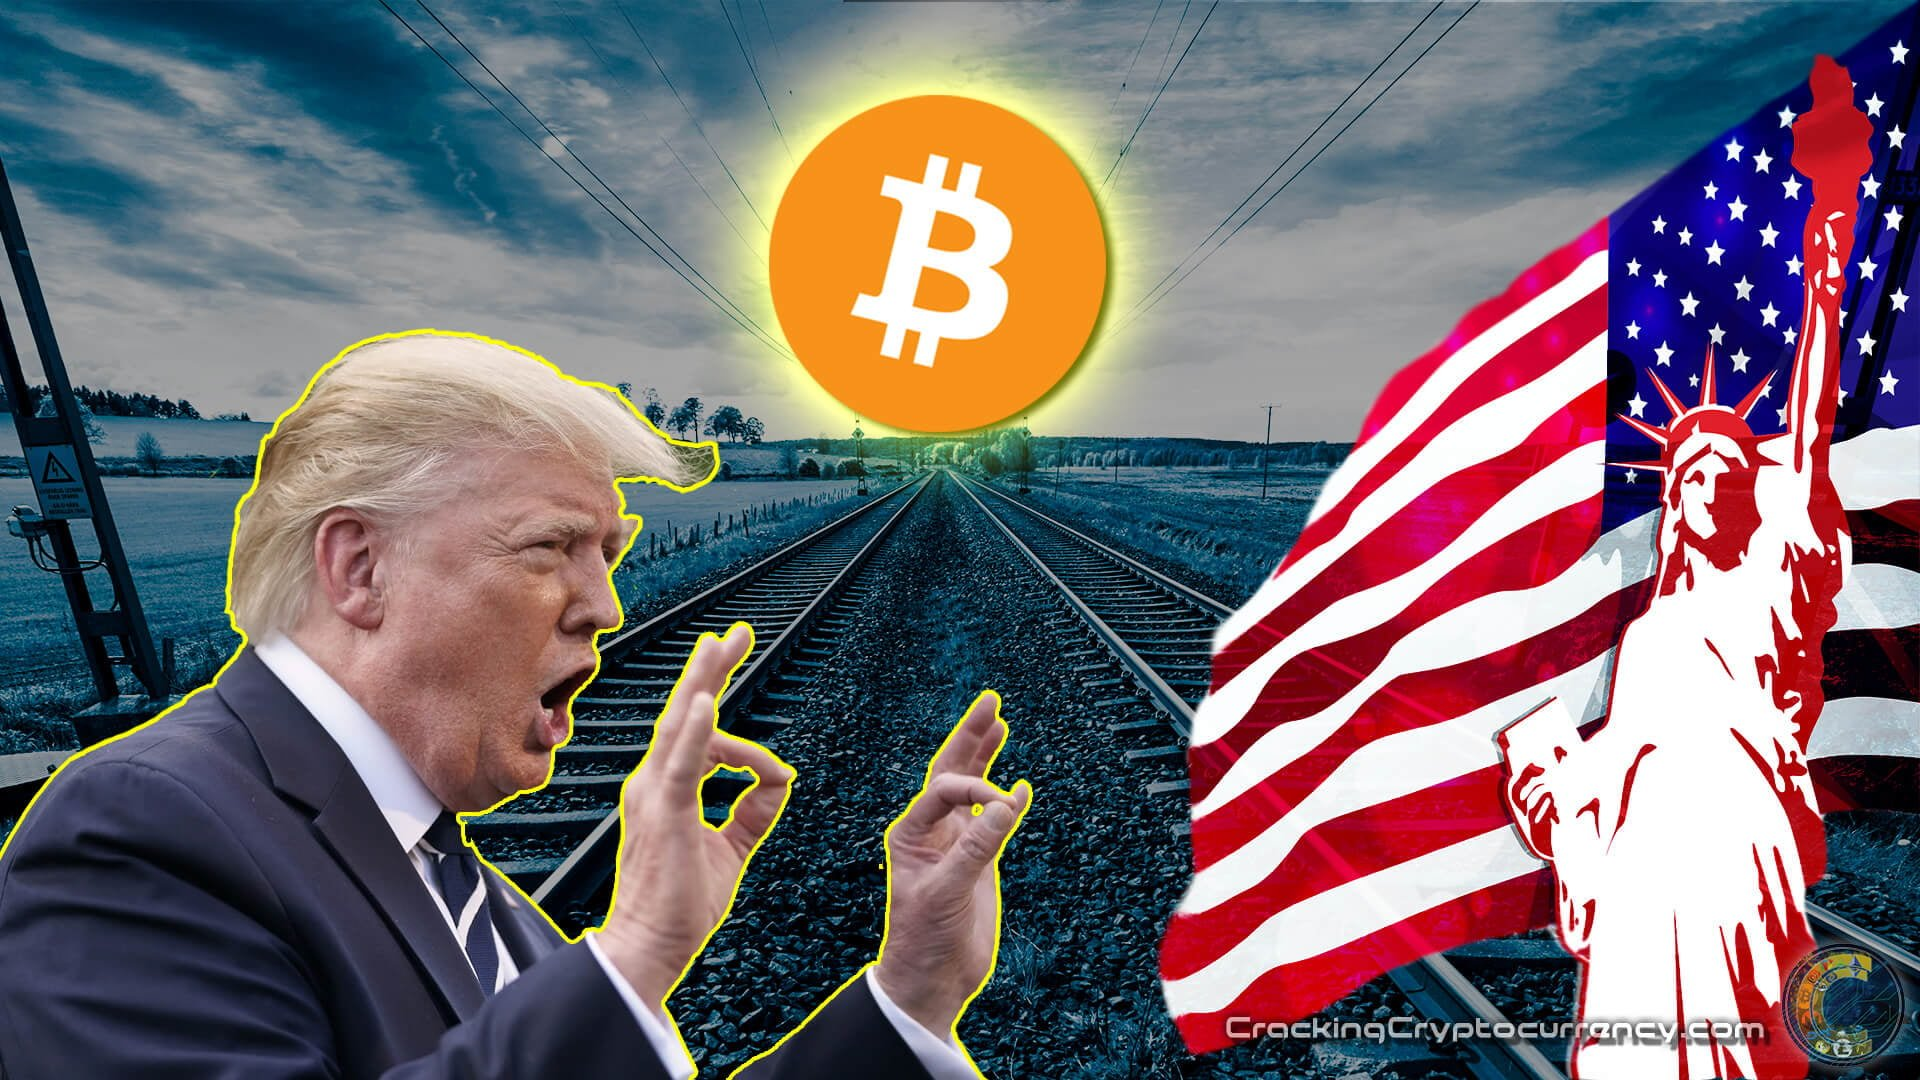 trump with two hands up in 'ok' symbol and mouth open talking looking to right at illustration of lady liberty and american flag with background graphic of train tracks running up into distance leading to big bitcoin logo with shining yellow behind it